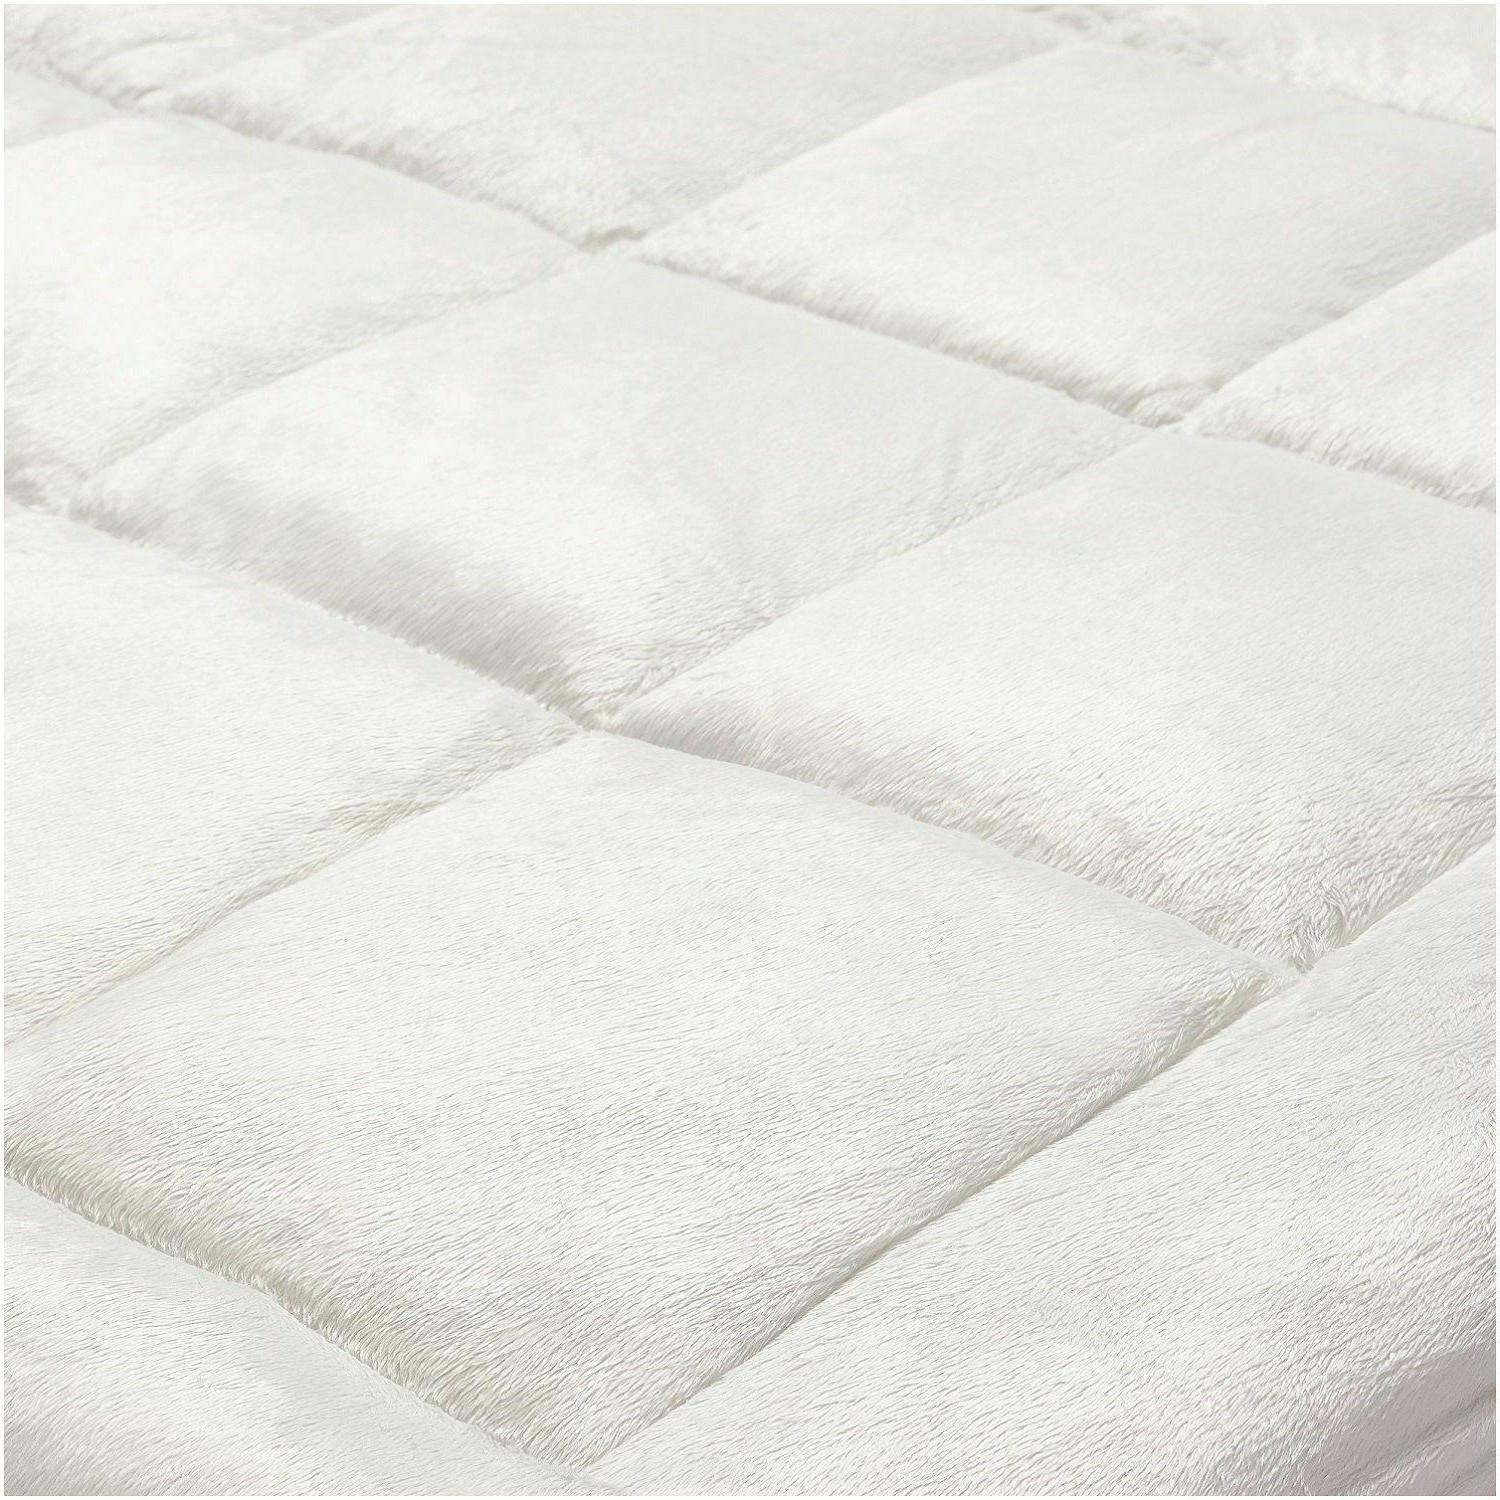 Mellanni Pad, Soft Fitted Quilt